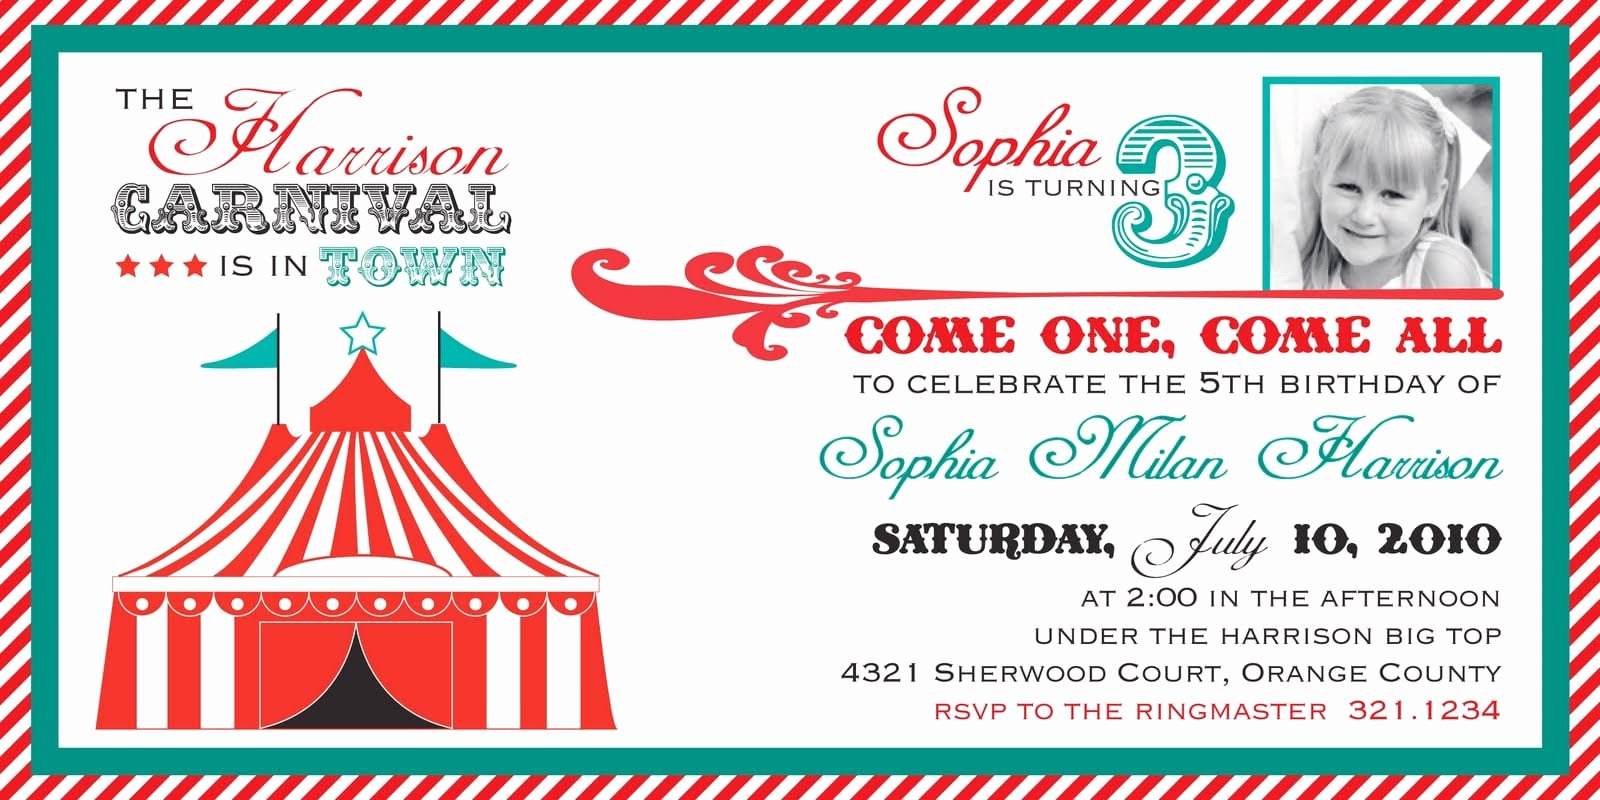 Carnival Ticket Invitation Template Free Elegant Free Ticket Invitation Template